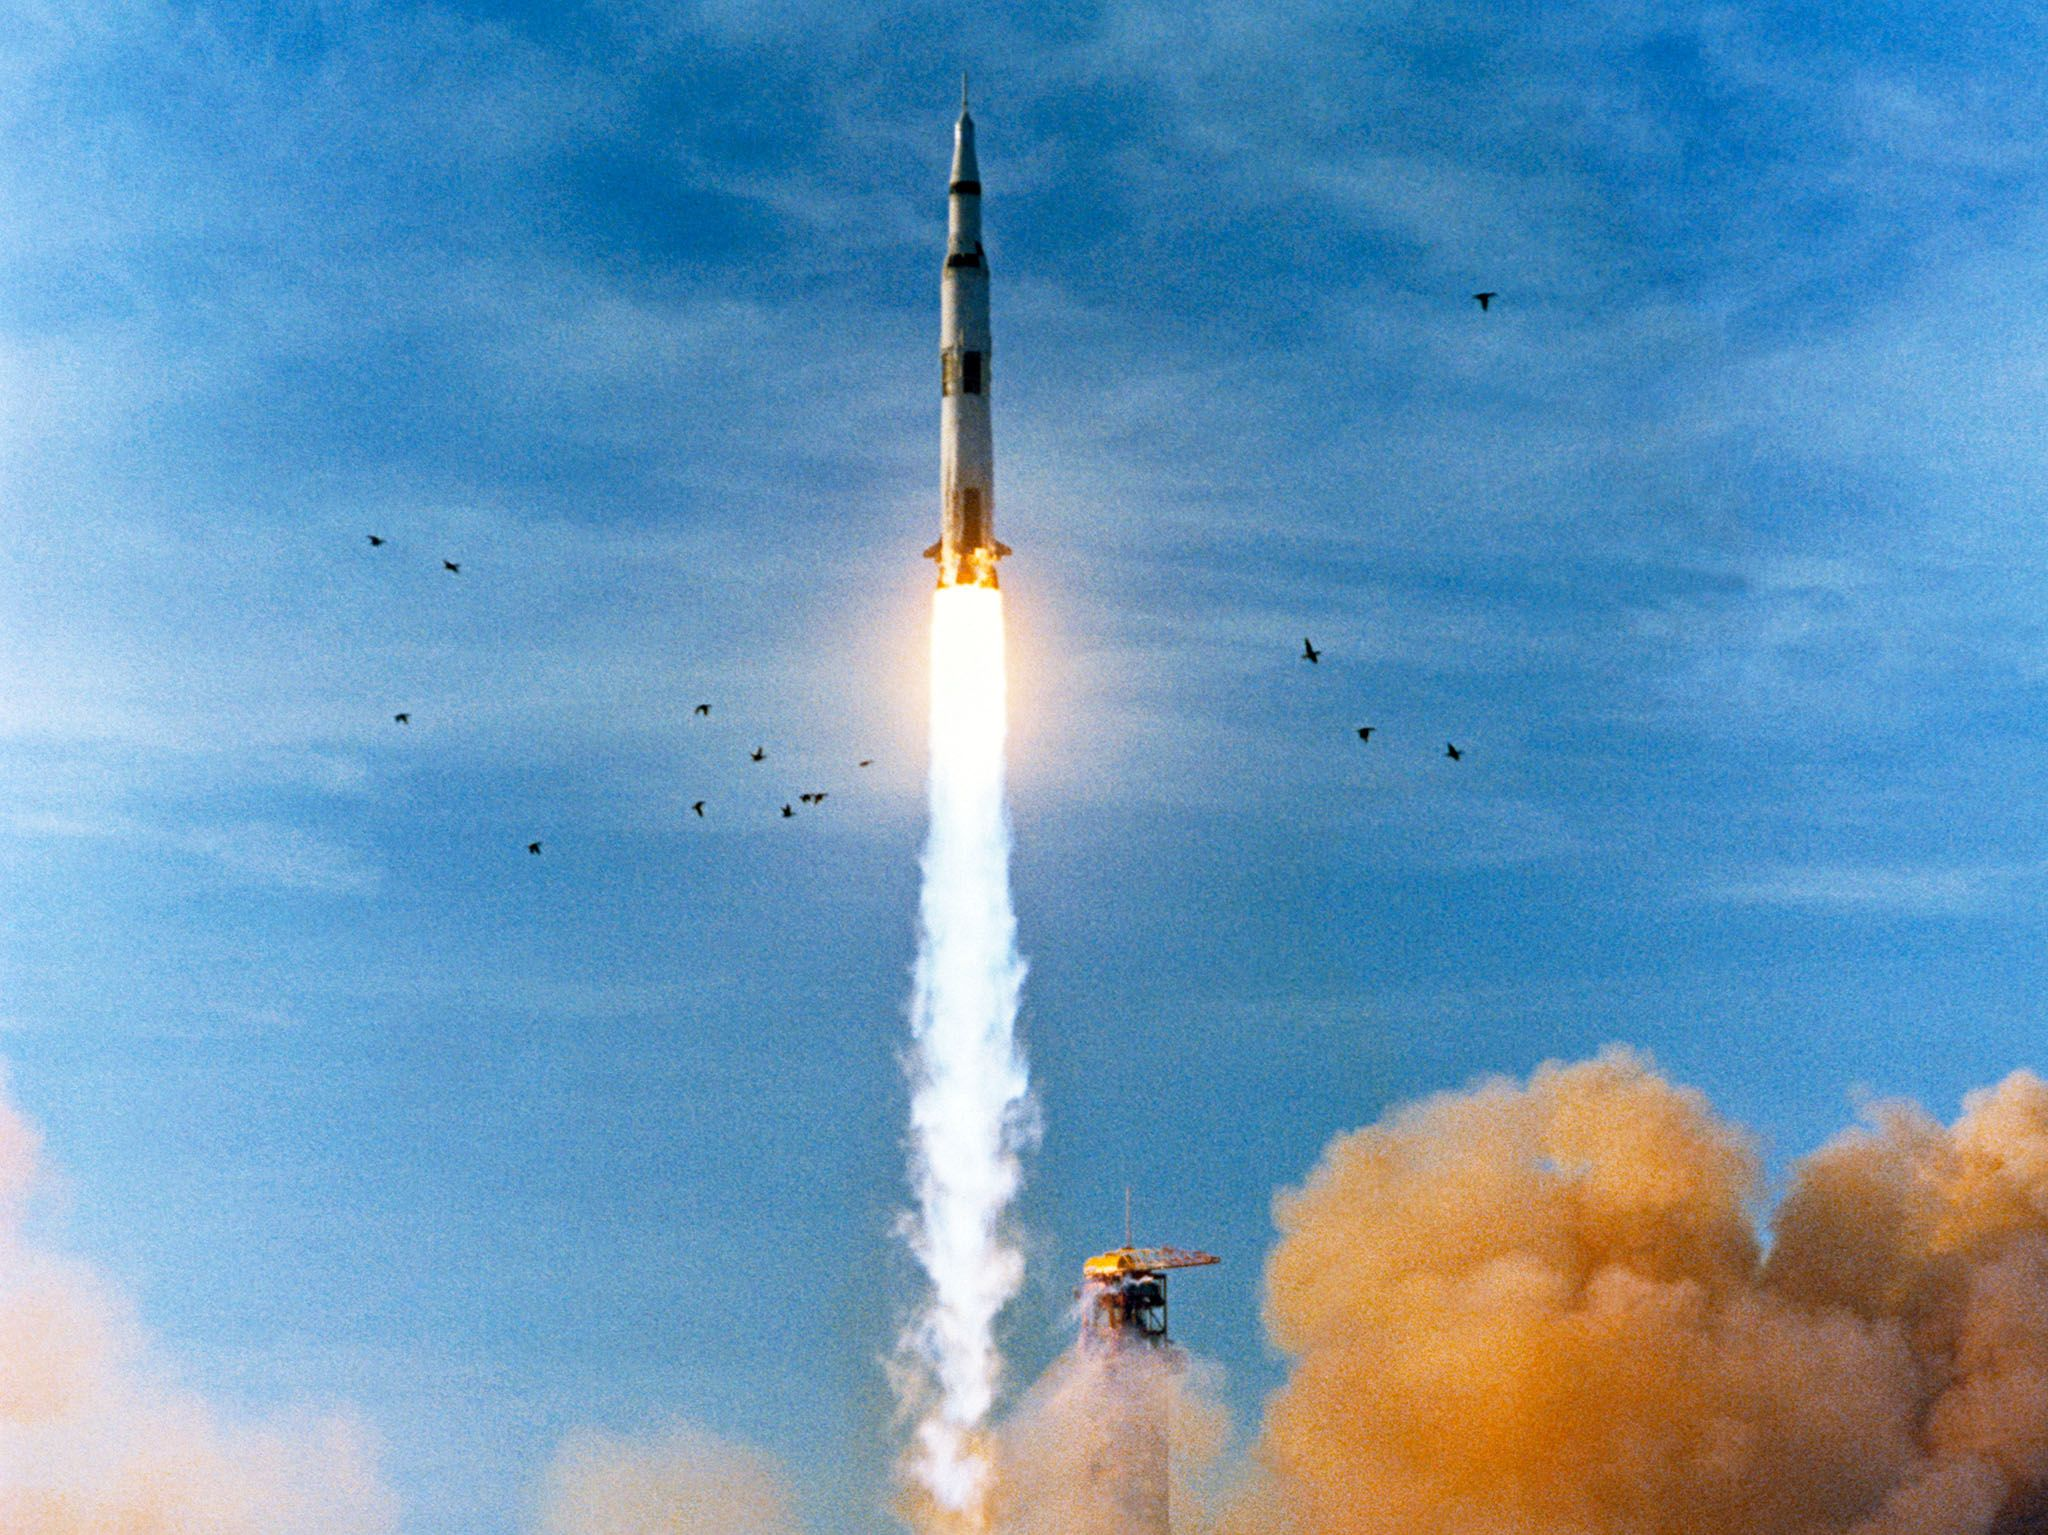 Dec. 21, 1968, Apollo 8 launched from Pad A, Launch Complex 39, Kennedy Space Center at 7:51... [Photo of the day - ژولیه 2019]